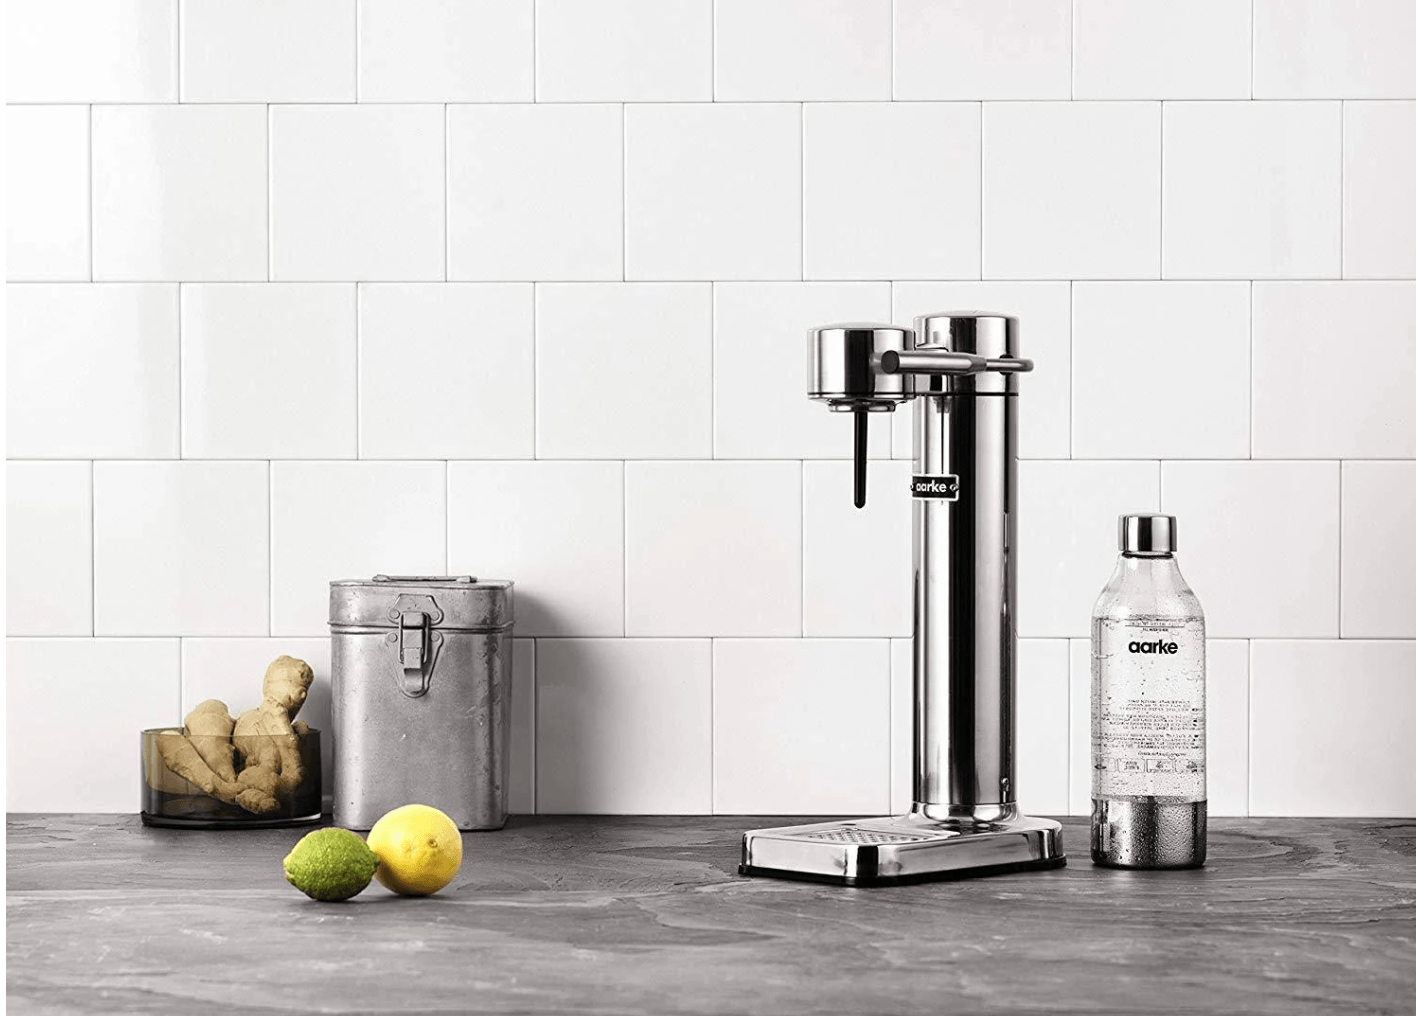 Is It Worth It: The Aarke Countertop Premium Carbonator from Sweden